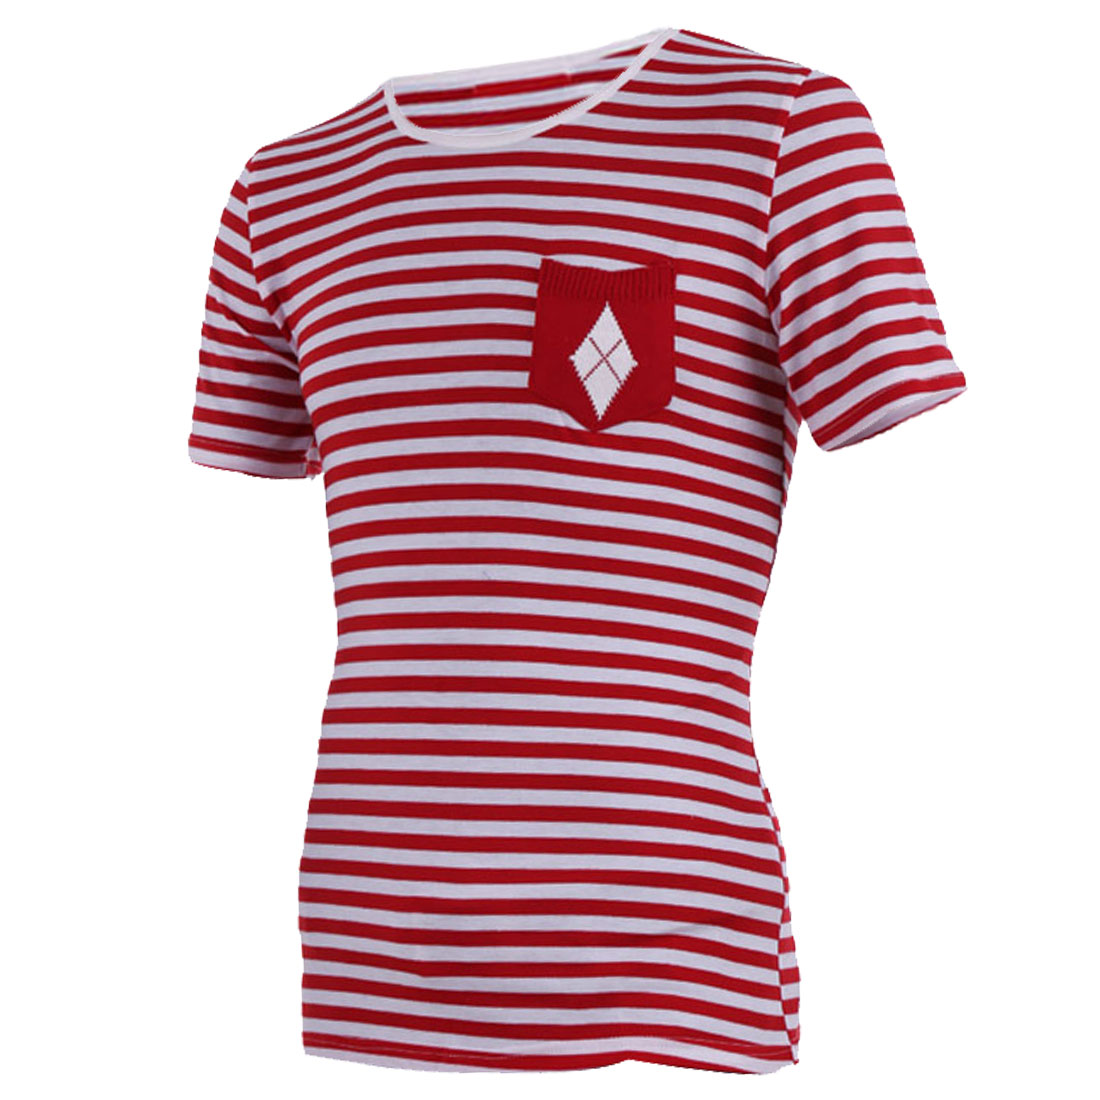 Men Round Neck Short Sleeve Stripes Shirt Red White S